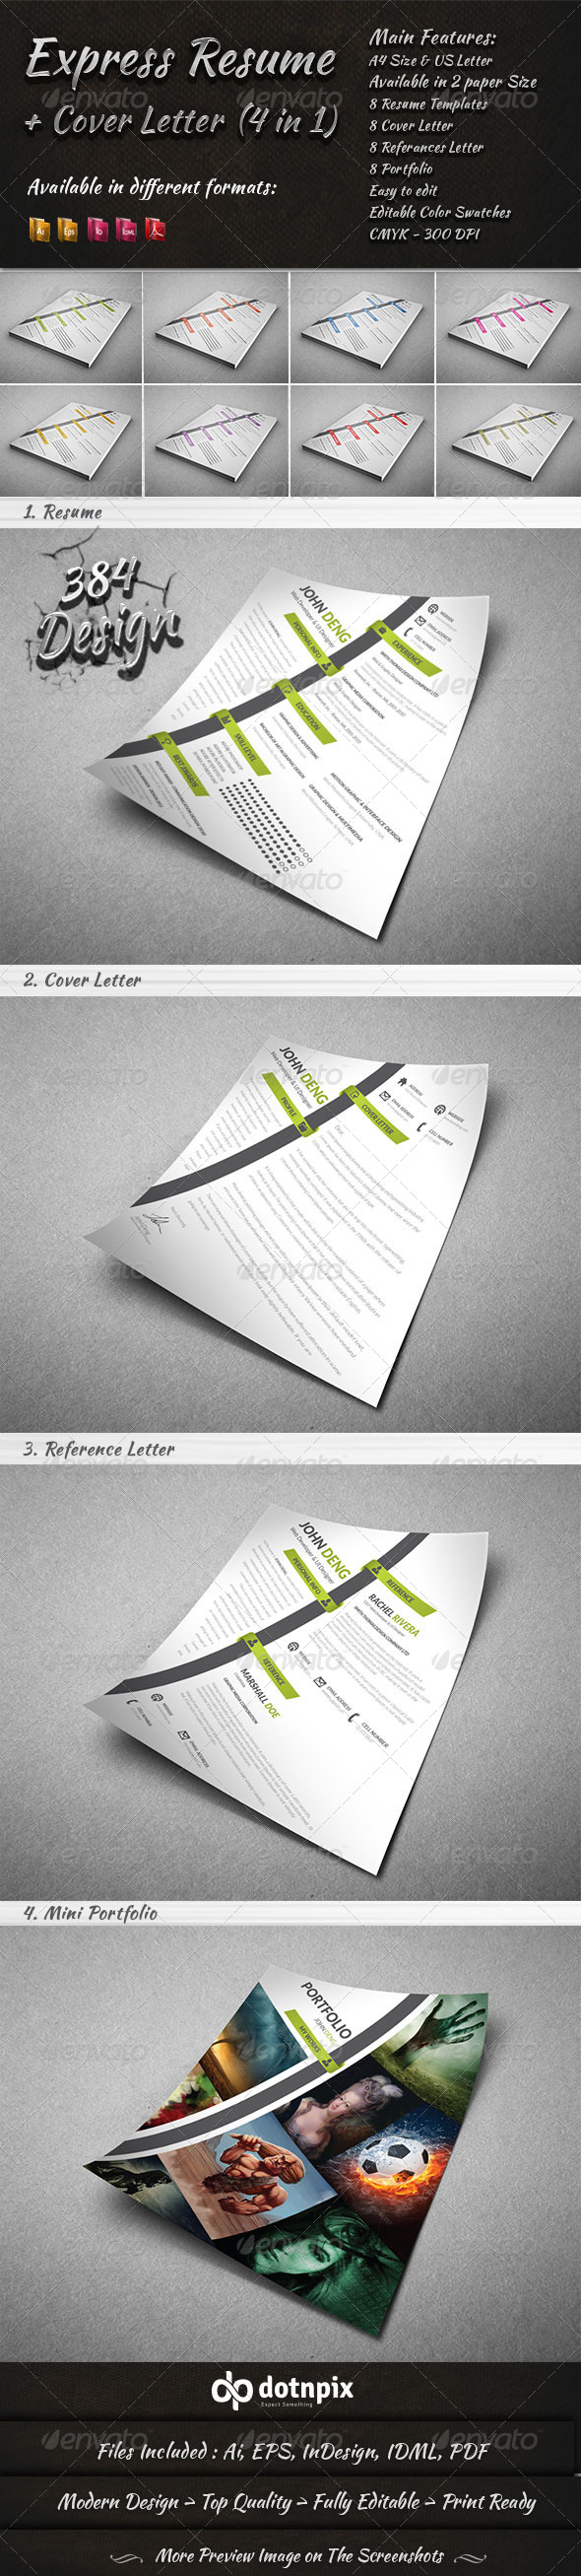 express resume cover letter 4 in 1 resumes stationery